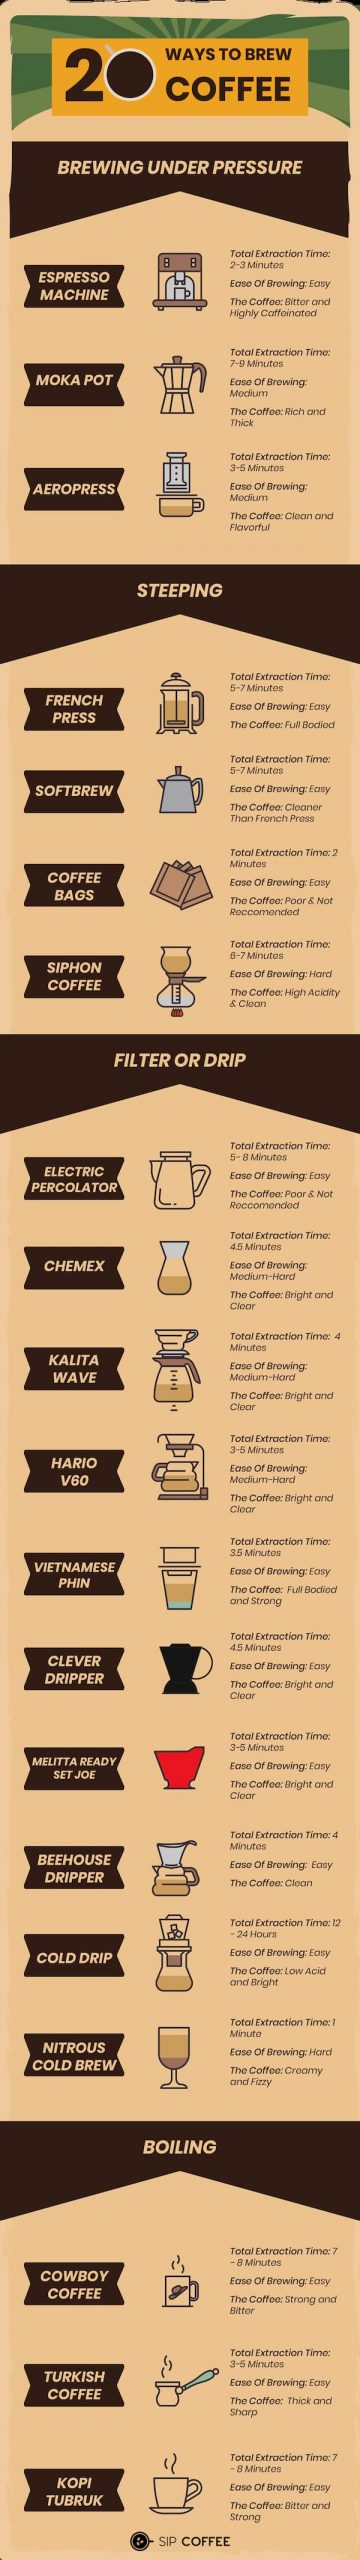 best way to make coffee infographic